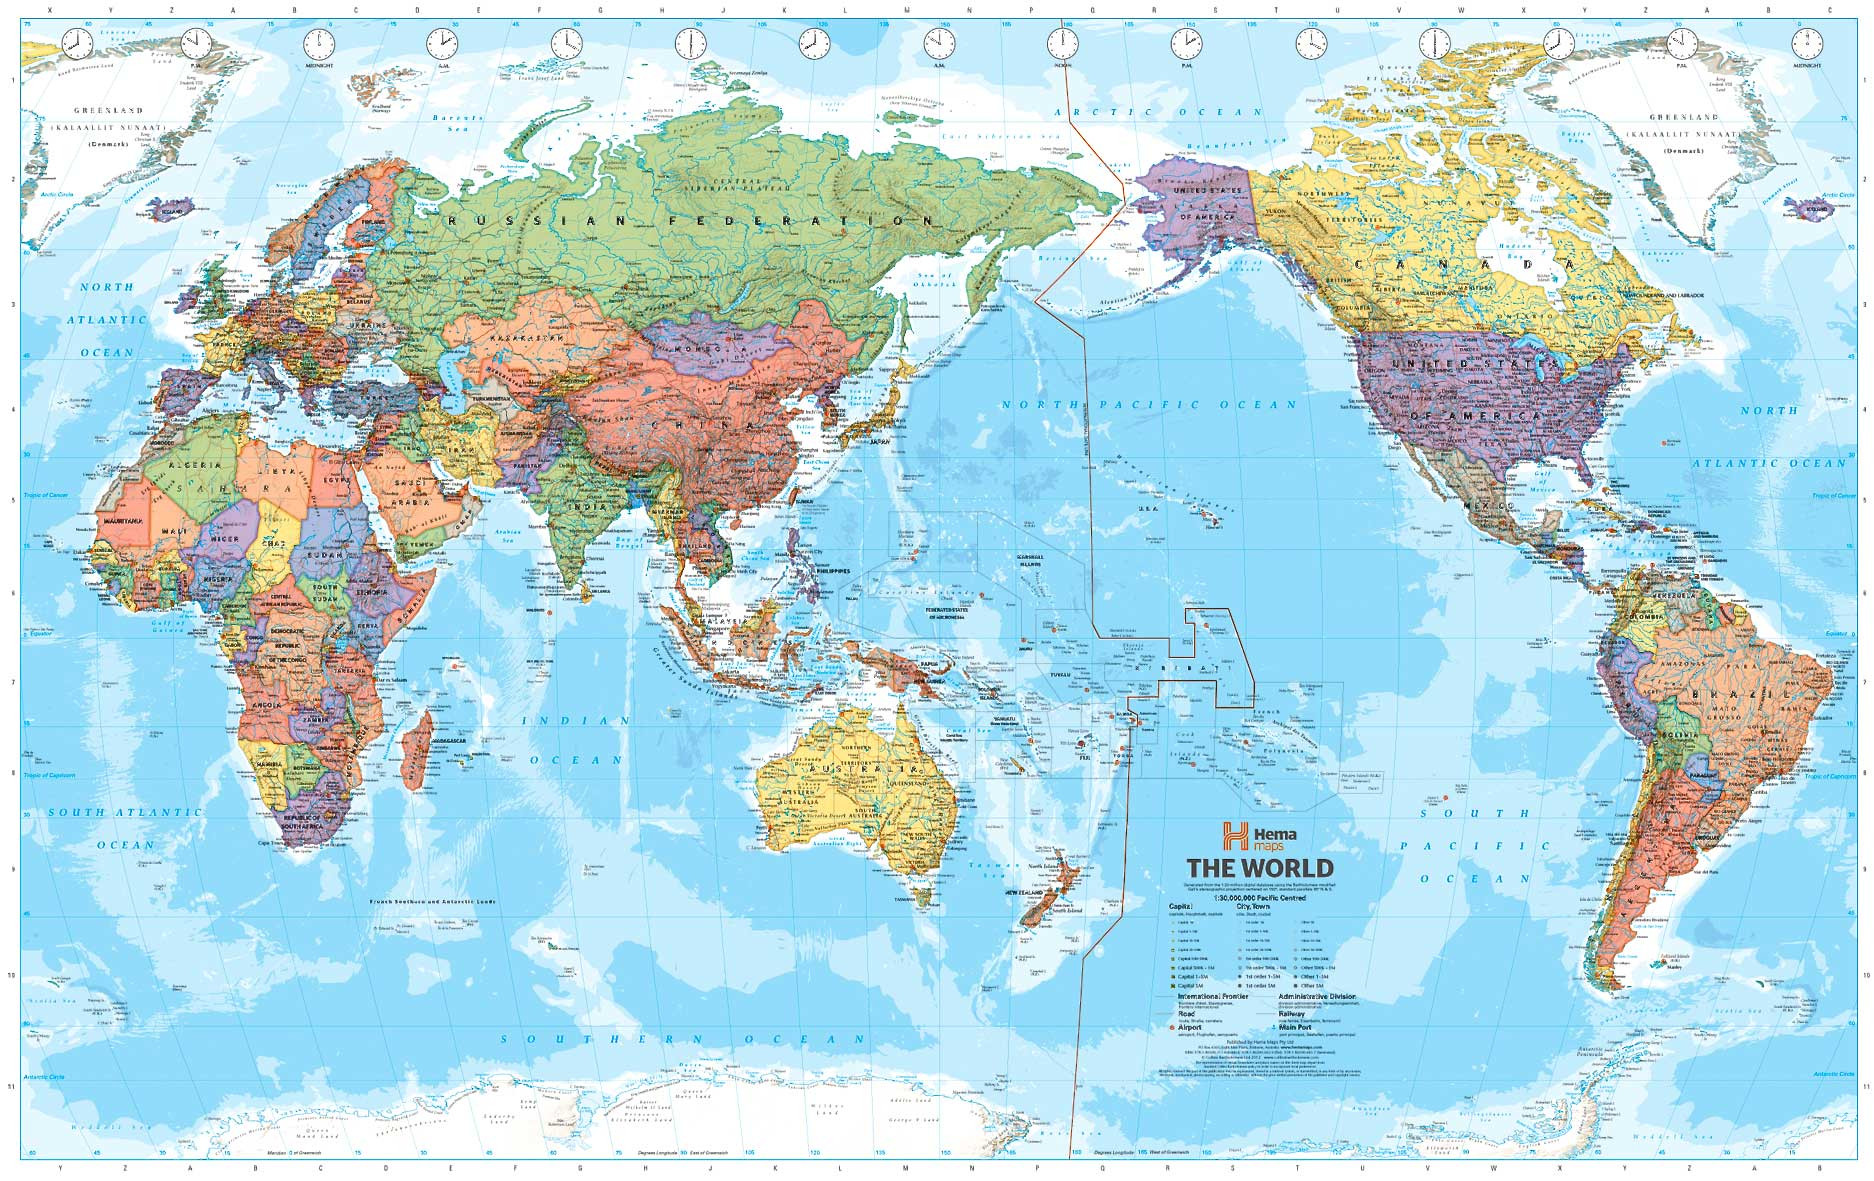 World Map With The Pacific Ocean In The Middle